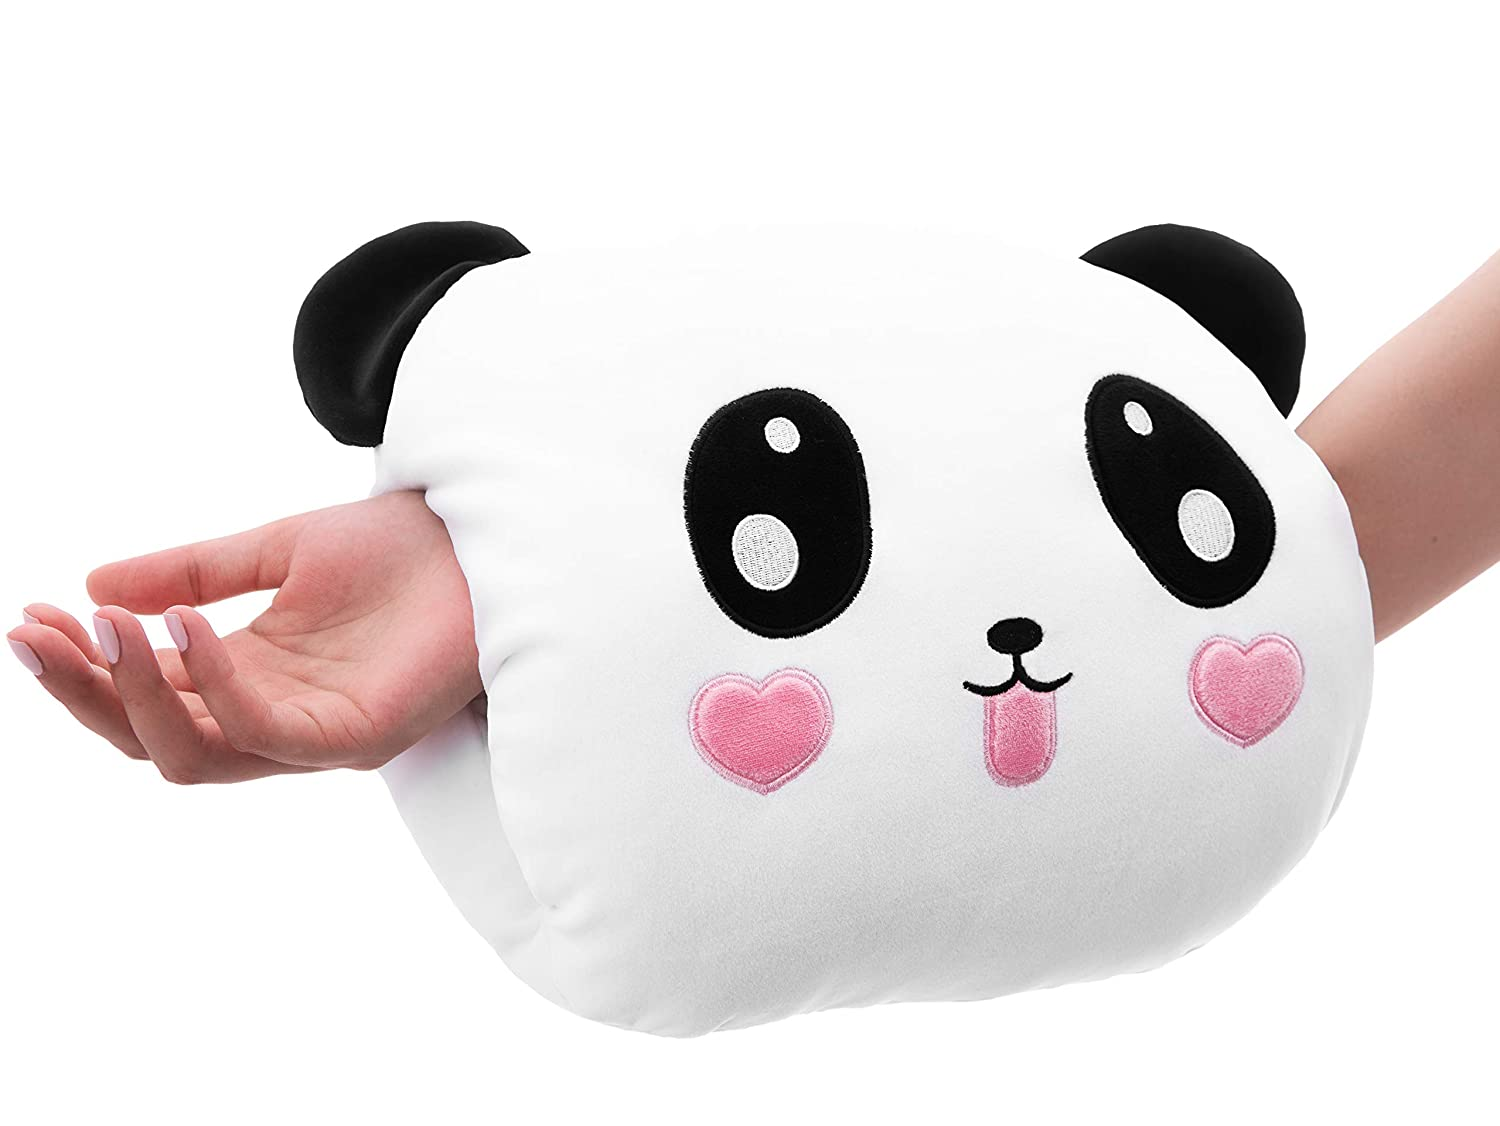 Best Nursing Pillow for Arm Breastfeeding, 5-in-1 Baby Travel Pillows, Panda Nursery Room Decor, Babies Gas Relief Positioning, Flat Head Support Sleeping, Breast Feeding, w/Free Matching Bag Gift KL